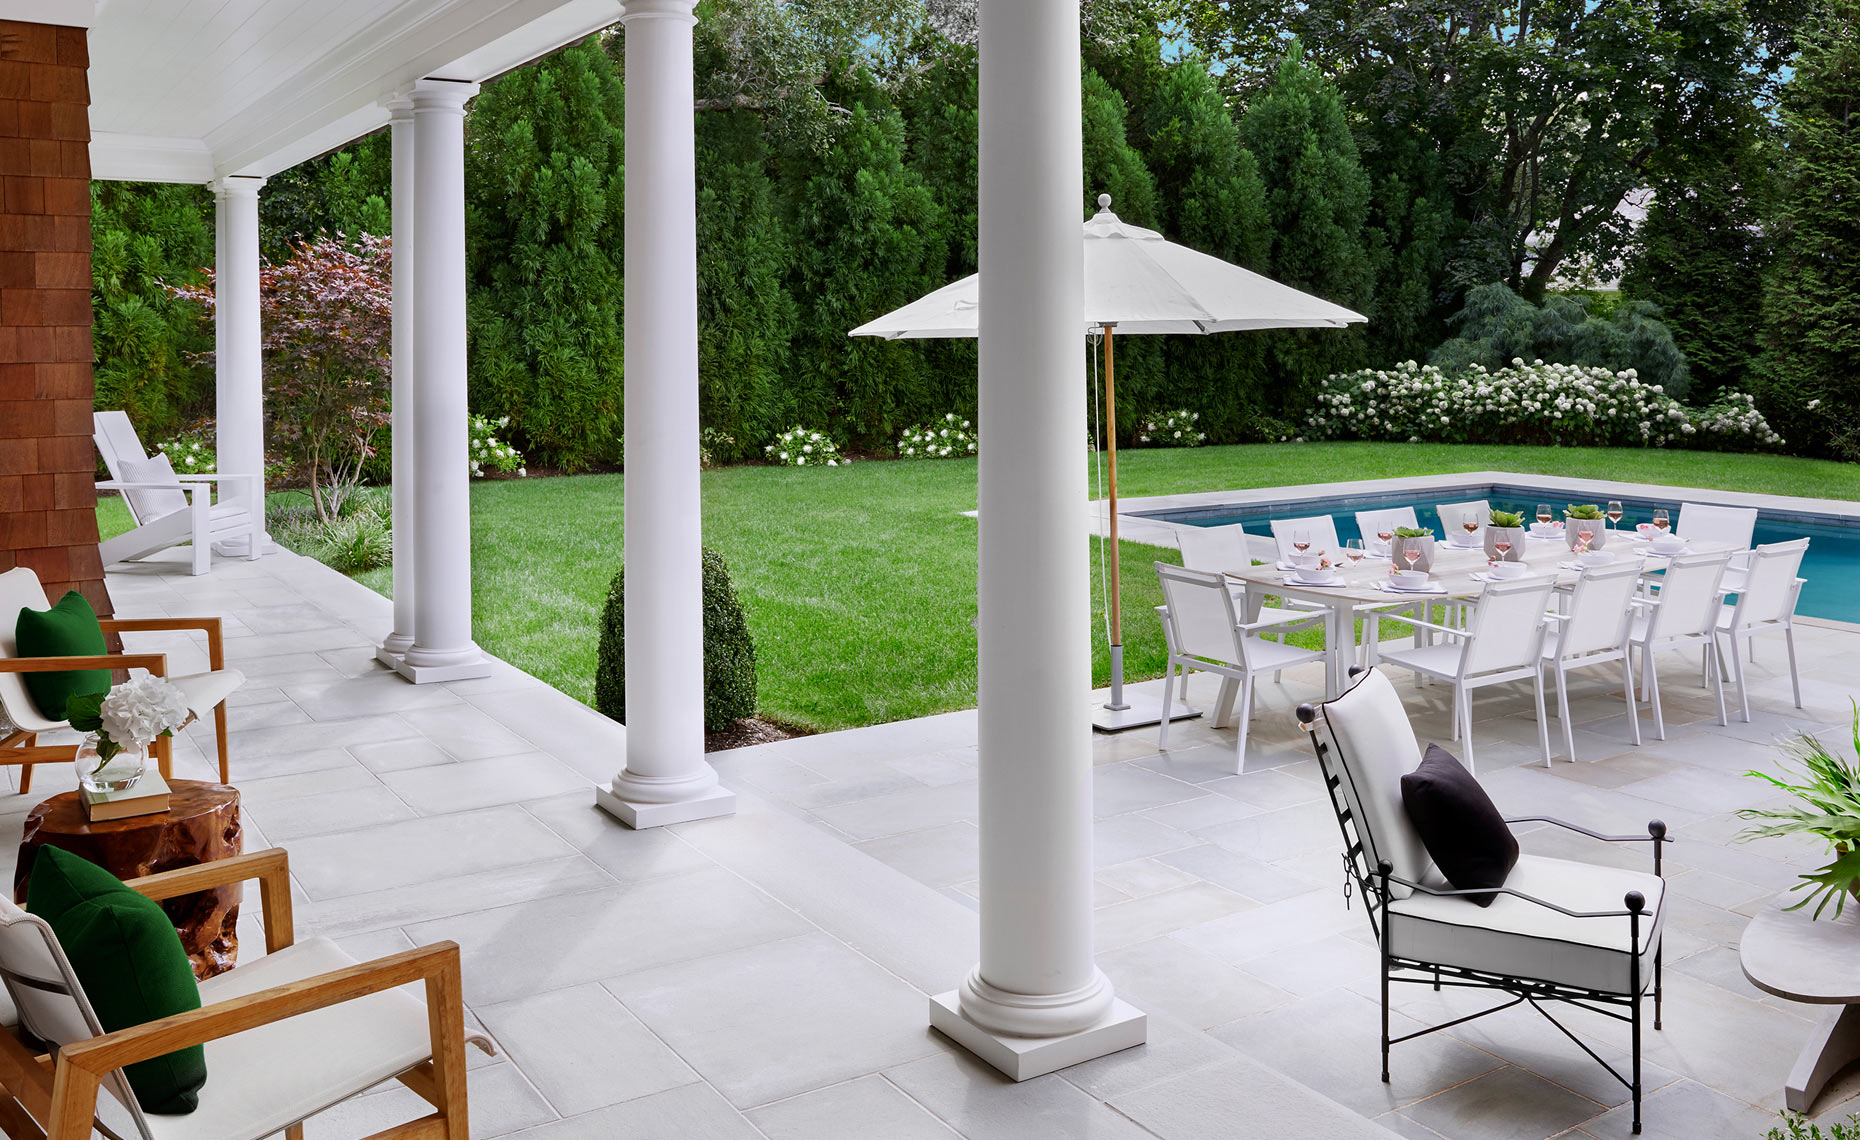 Hamptons_Pool_Julie_Anne_Burch